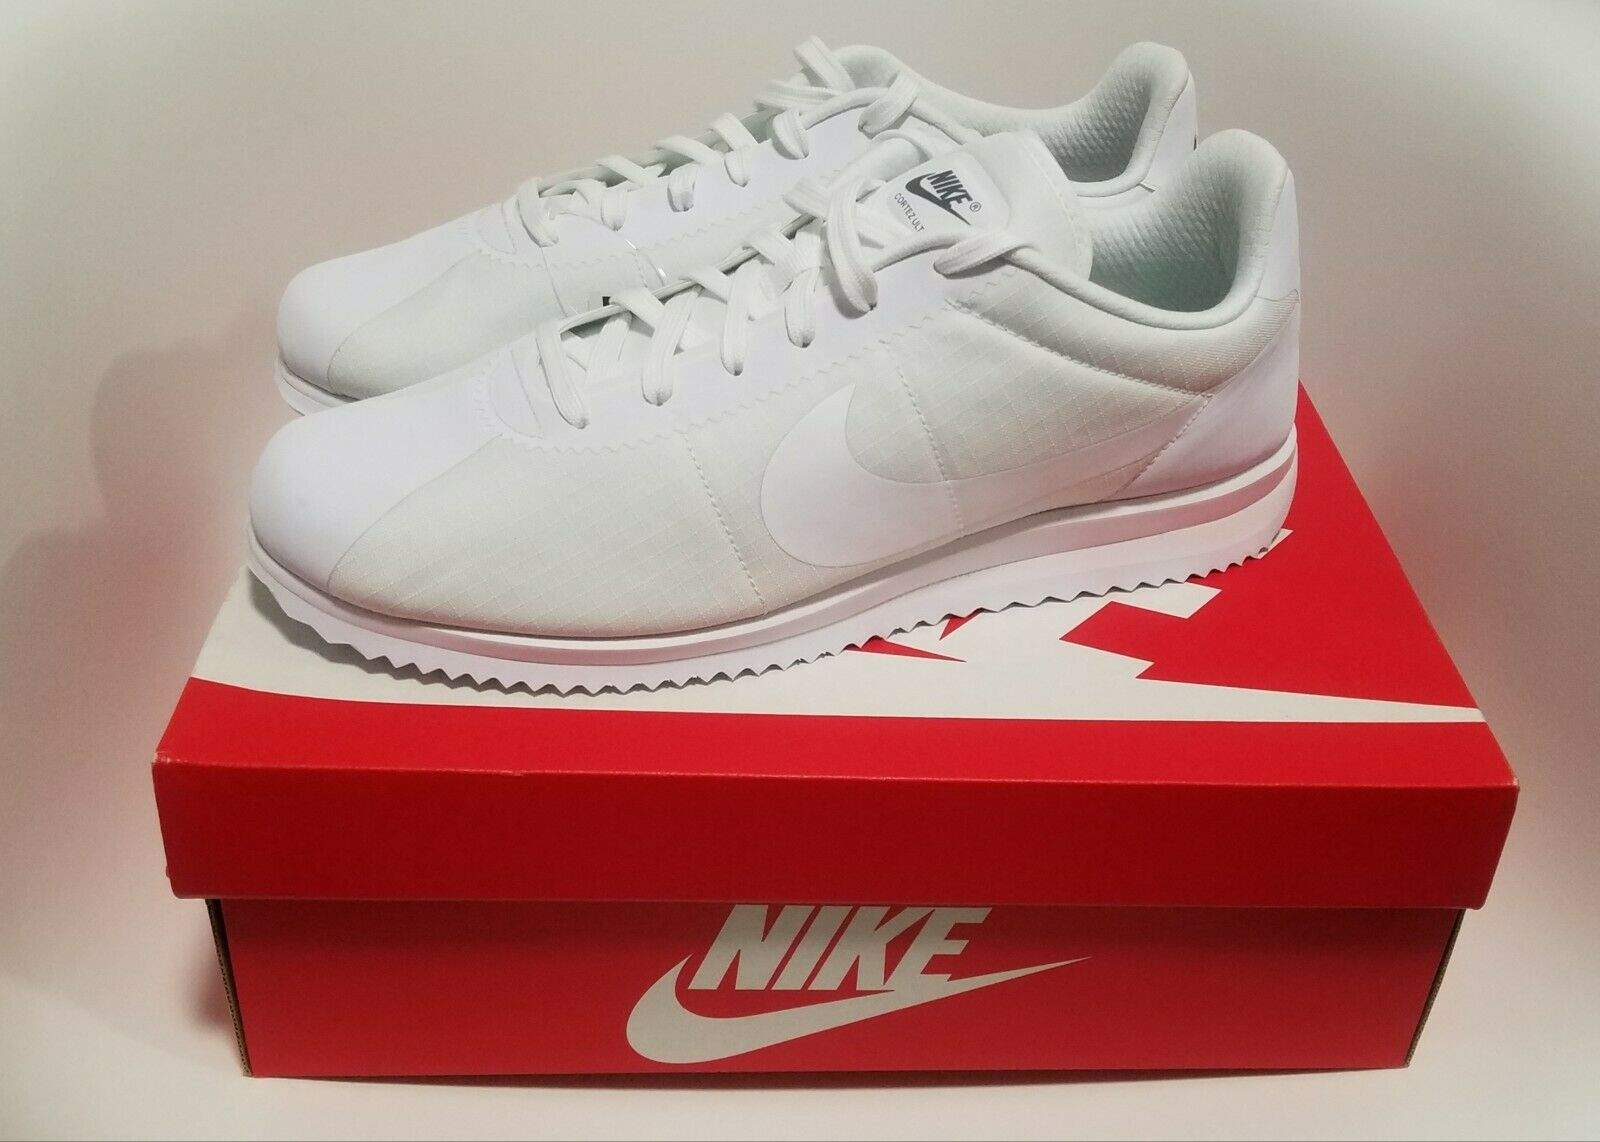 100 Nike Cortez Ultra Textile Men's Size 12 shoes White Cool Grey 833142-101